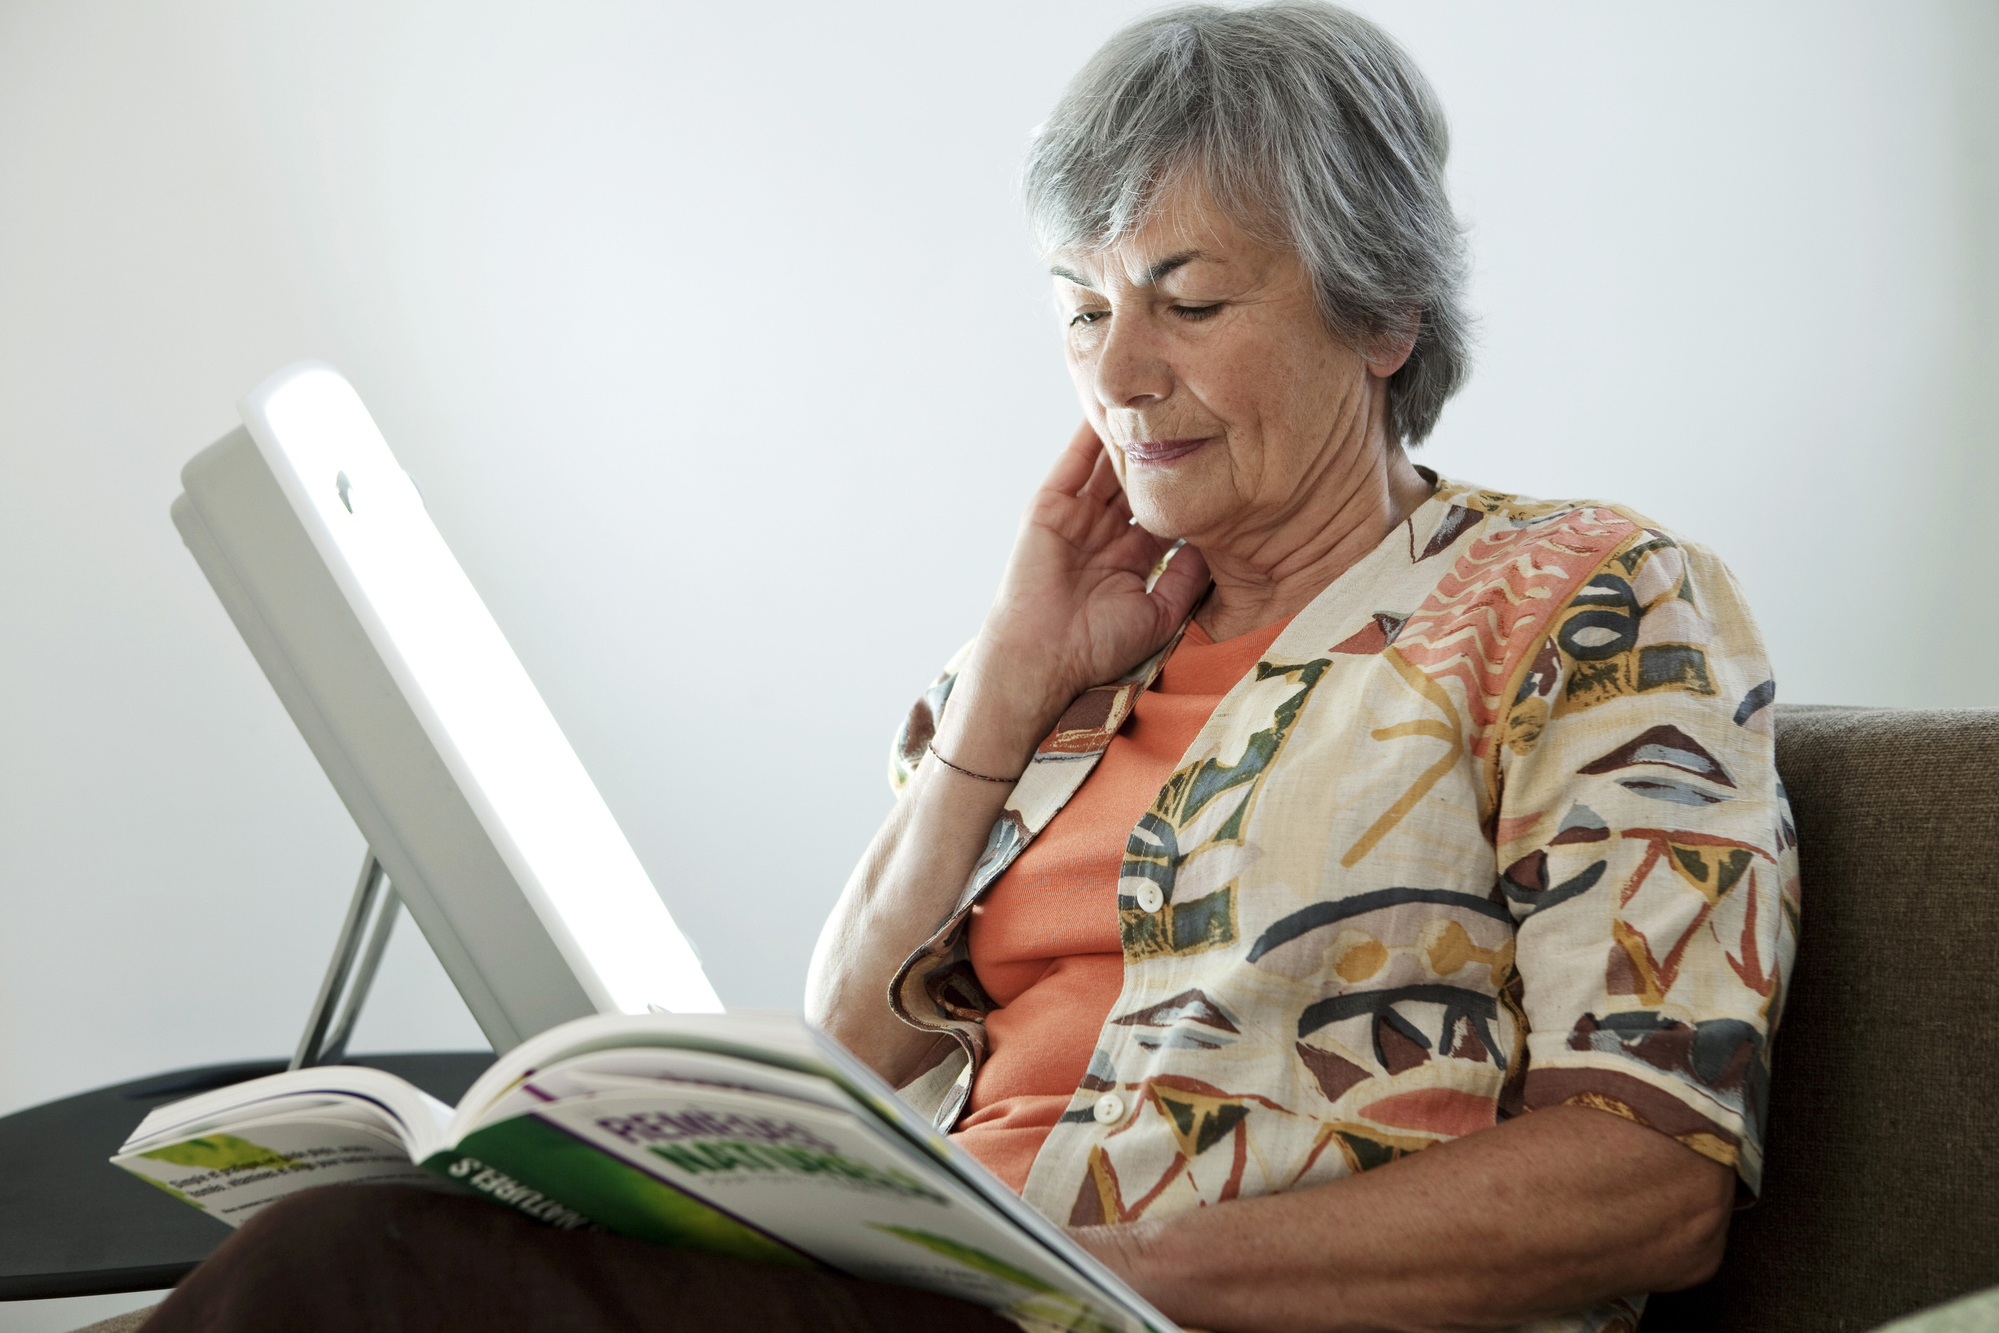 ELDERLY PERSON LIGHT THERAPY